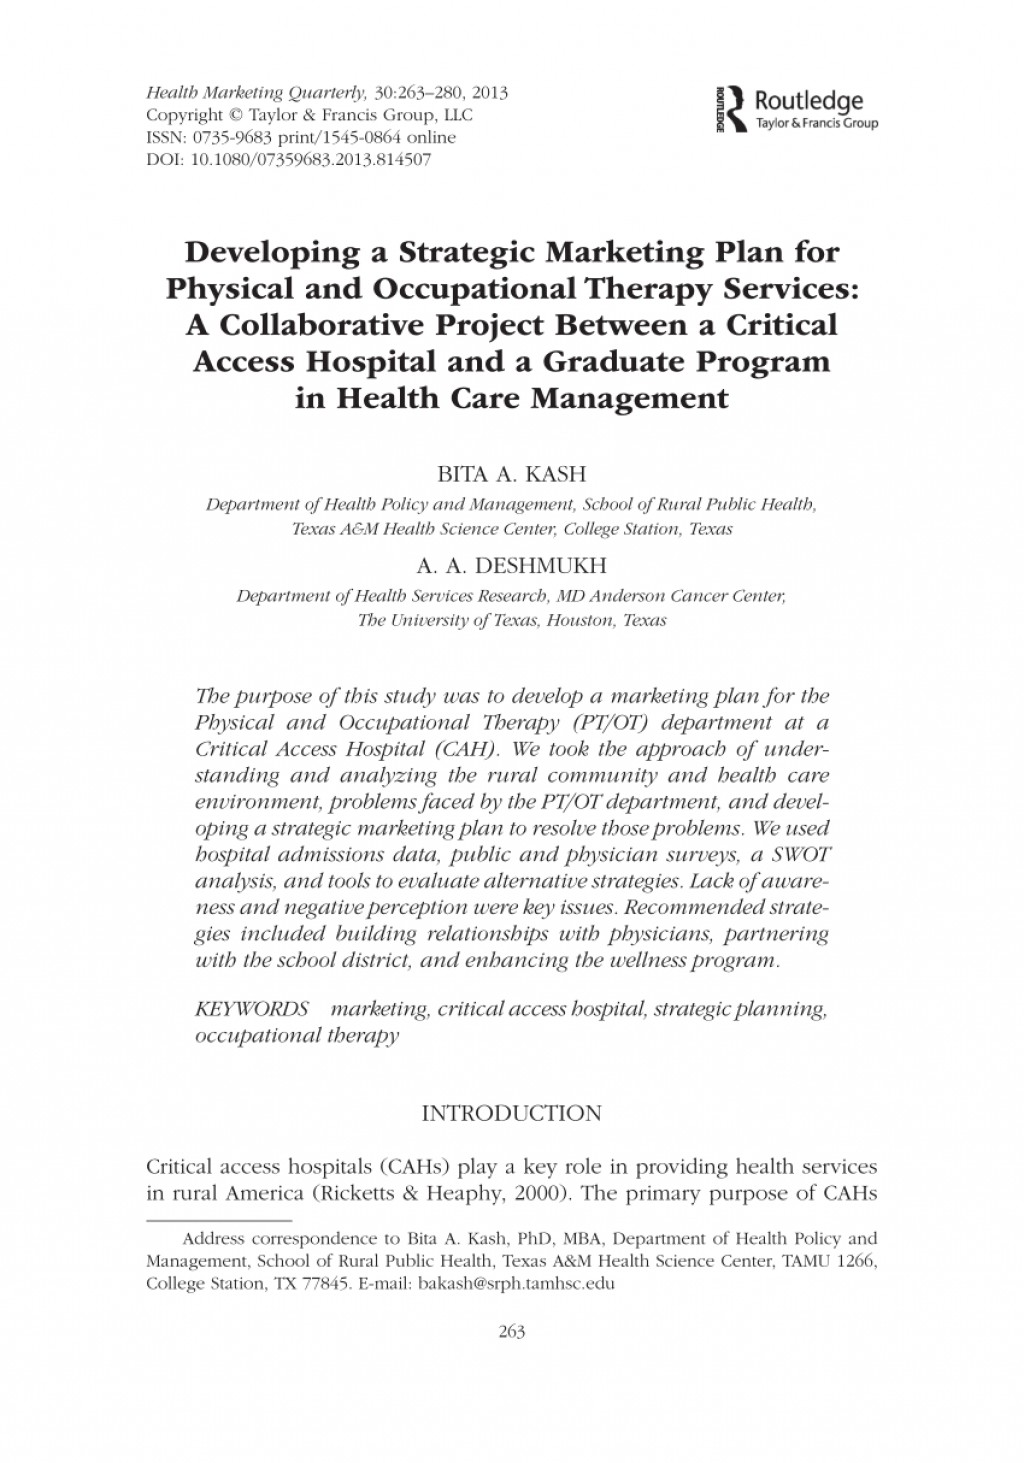 008 Research Paper Cancer Marketing Plan Mba Image Hd Largepreview For Admission Archaicawful Breast Pdf Example Prostate Large